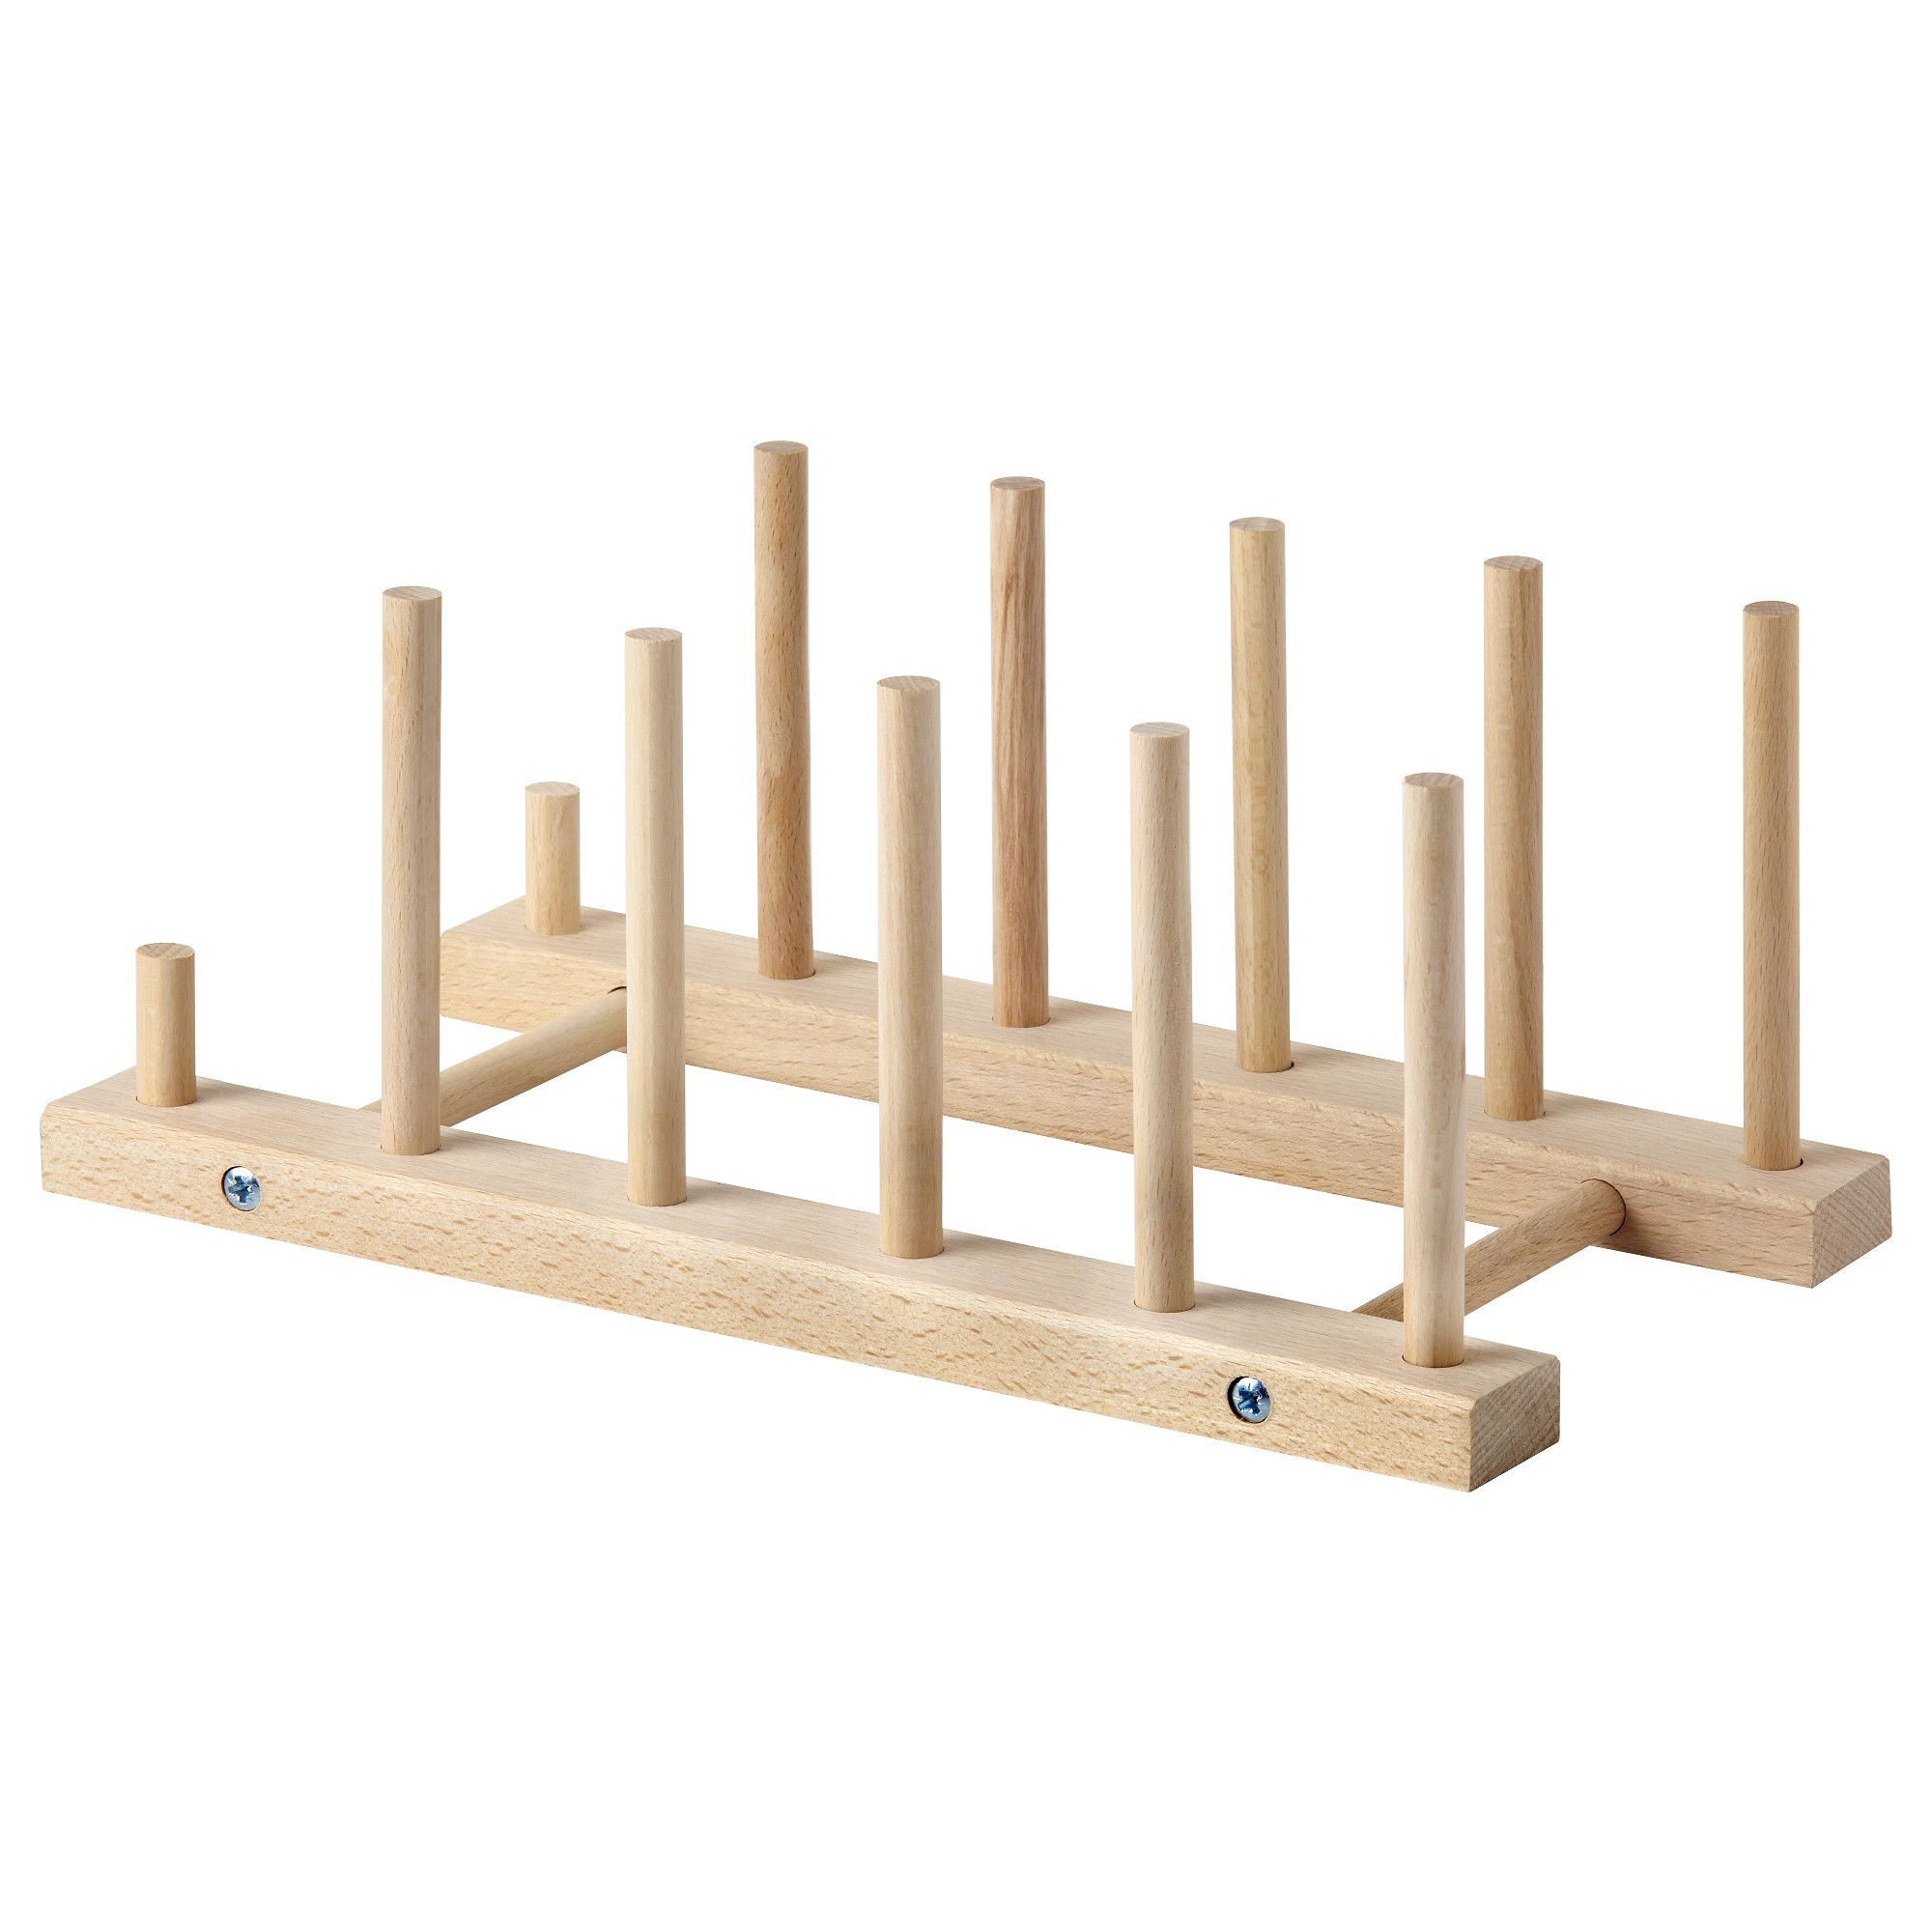 Ikea Küche Montage Video Nyplockad Plate Holder Beech In 2019 Plate Holder Ikea